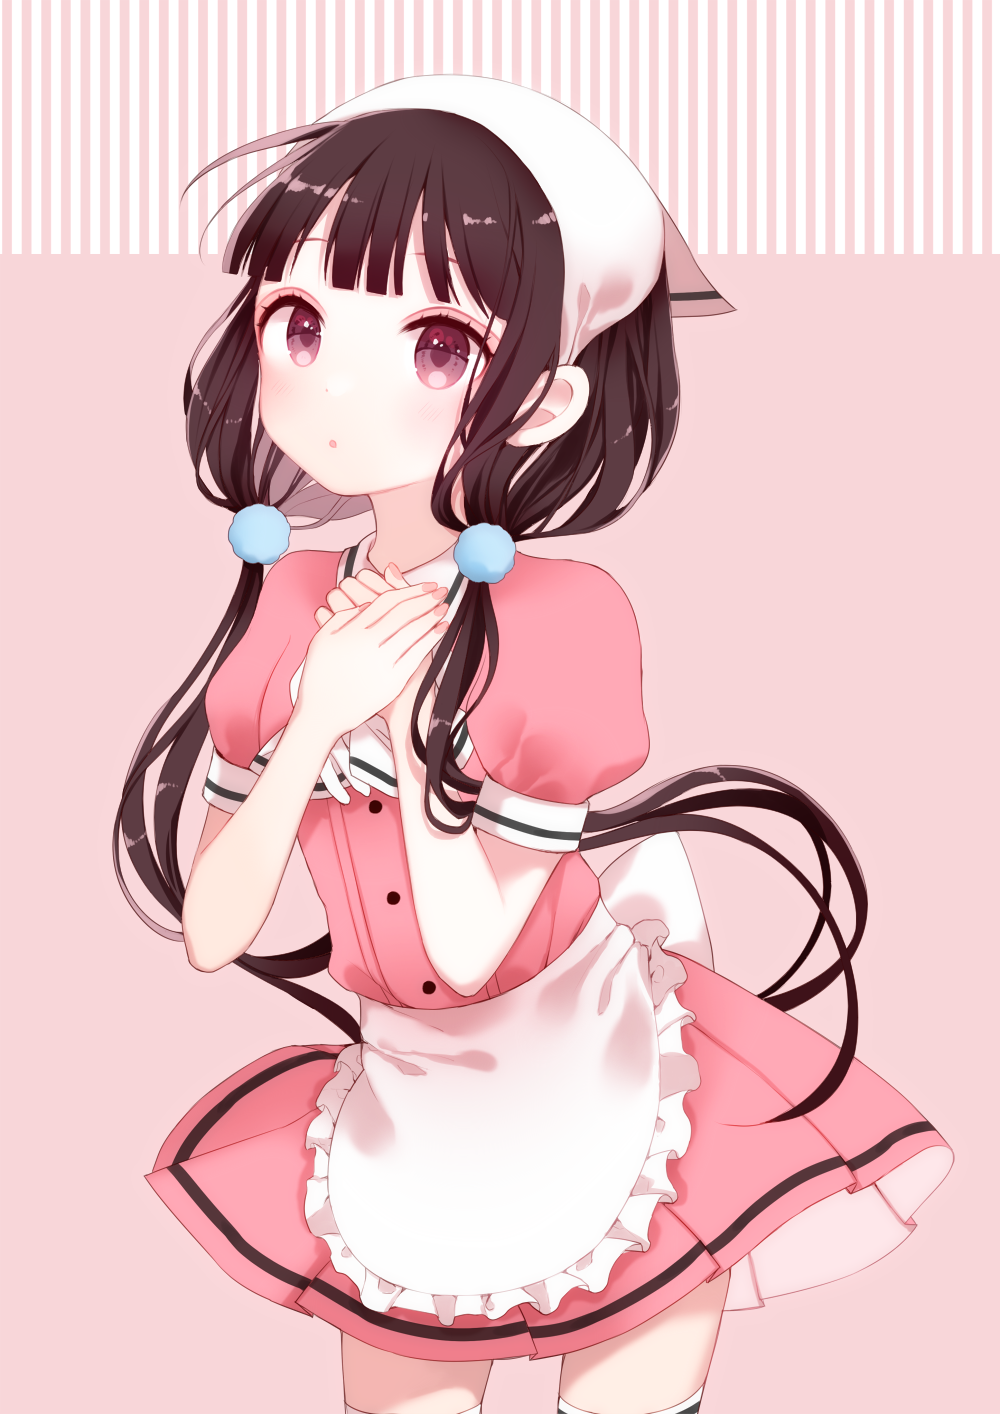 1girl :o apron bangs blend_s blush brown_hair commentary dress gloves gloves_removed hair_ornament hand_on_own_chest head_scarf highres kurashi long_hair looking_at_viewer low_twintails pink_dress pink_eyes puffy_sleeves sakuranomiya_maika short_sleeves solo standing stile_uniform thigh-highs twintails waitress white_legwear zettai_ryouiki